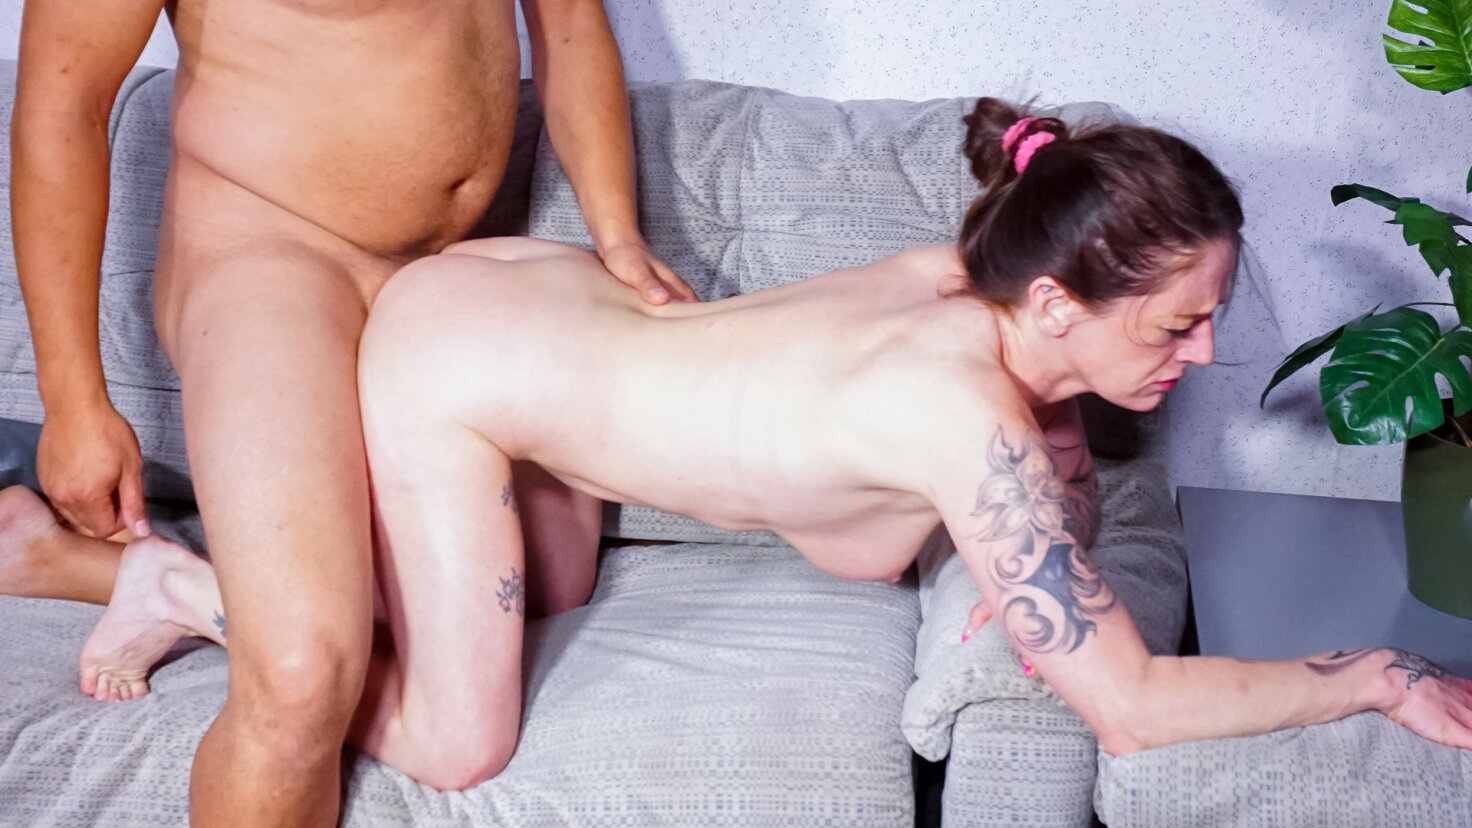 Busty brunette German housewife enjoys riding and sucking big cock